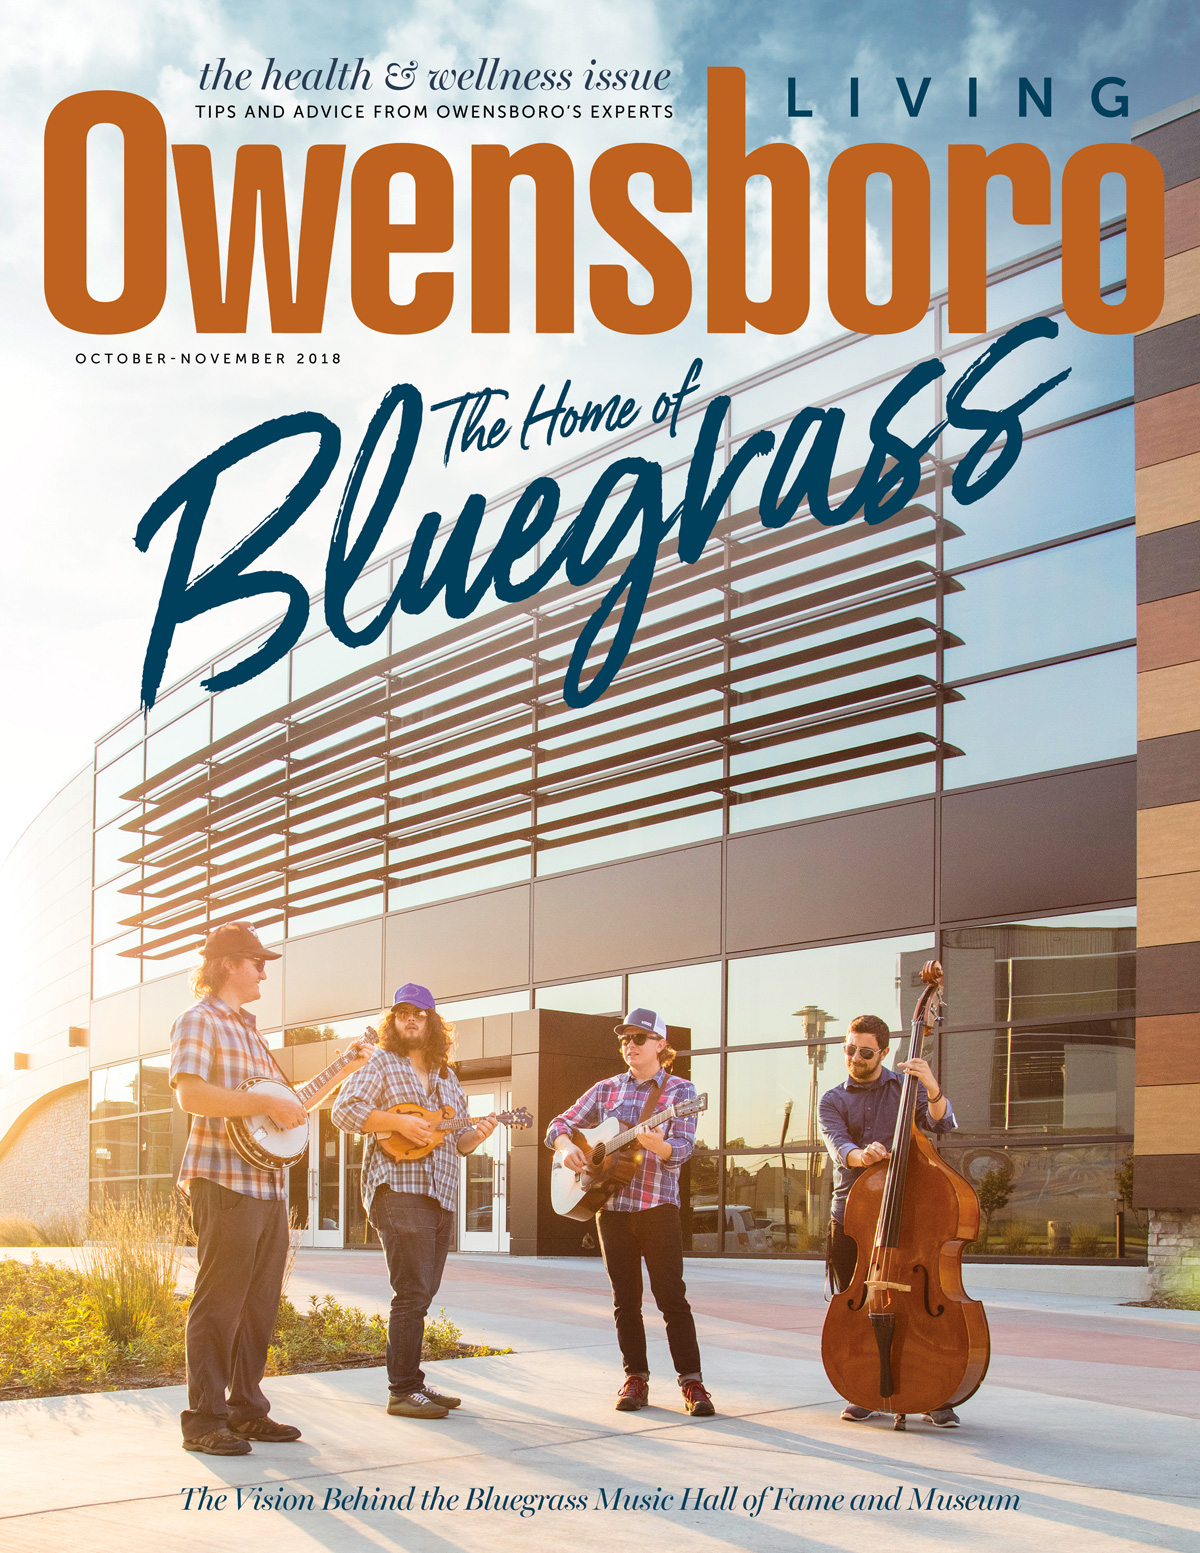 Owensboro Living Oct/Nov 2018 Cover